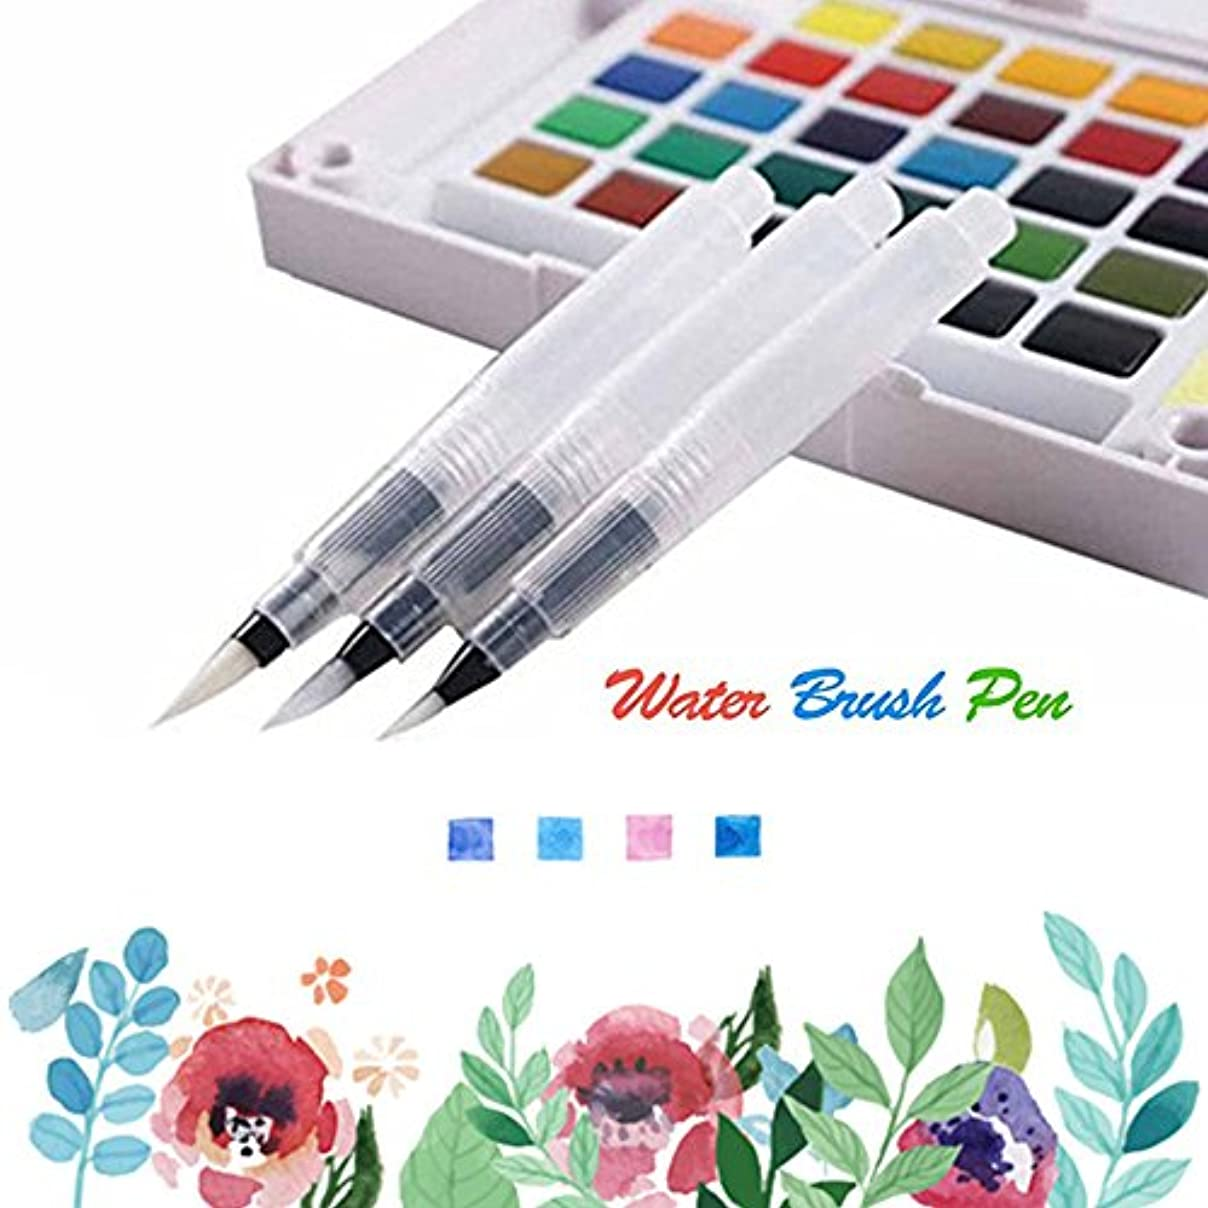 MAZU 3-Piece Leak Proof Water Coloring Brush Pen Set - Refillable, Watercolor, Calligraphy, Painting,Water-soluble Pencils,Arts Markers,Solid Colors or Powdered Pigment D-3 sphux908349